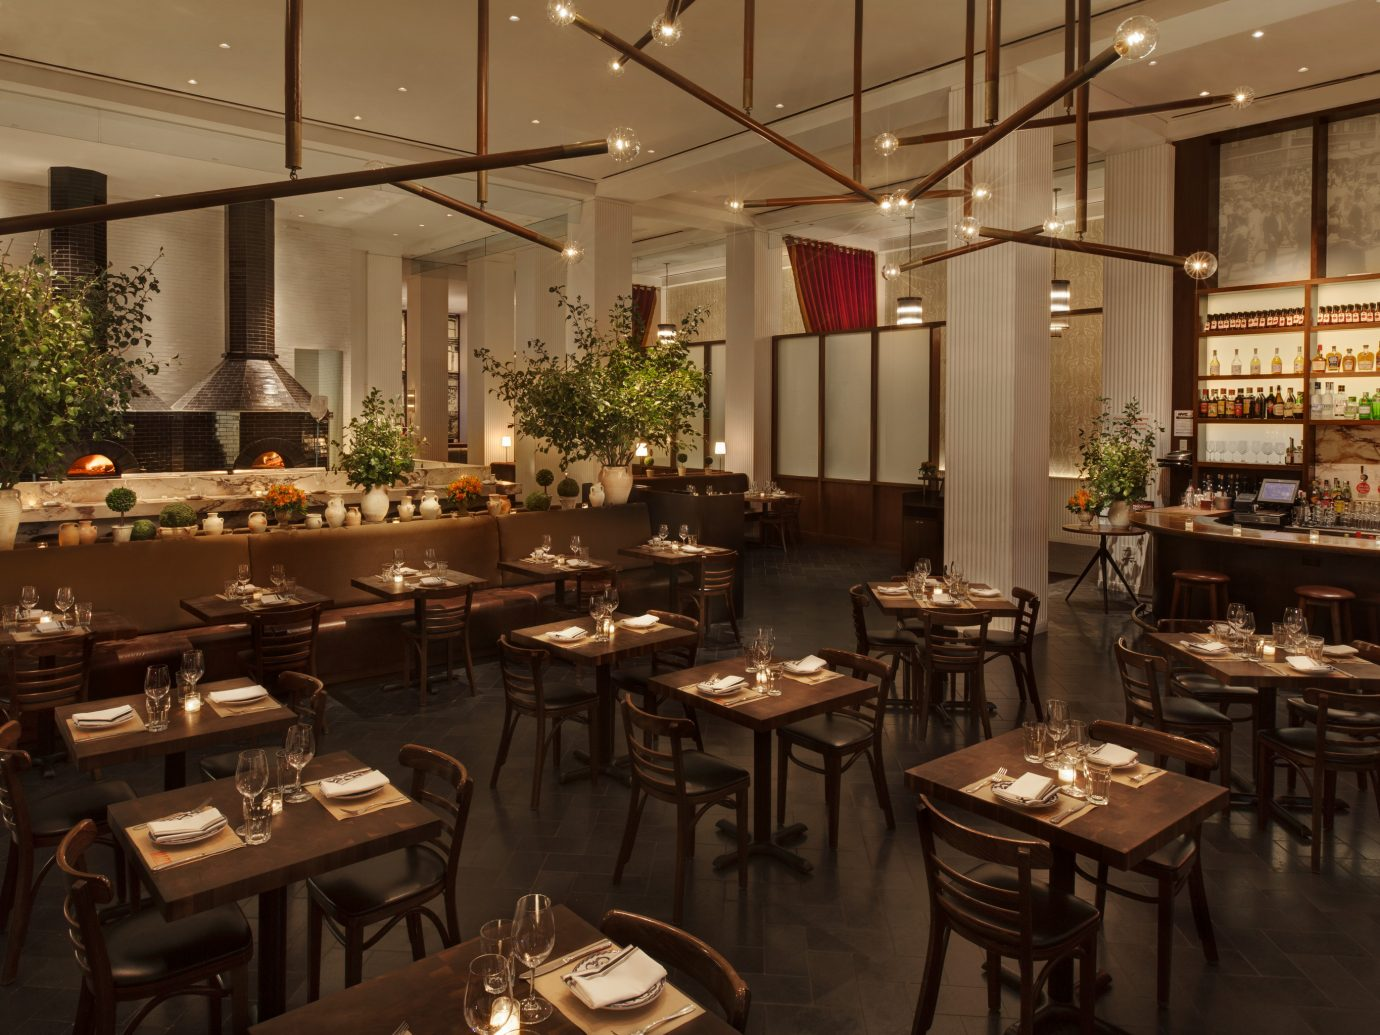 Restaurant at The Redbury, New York City